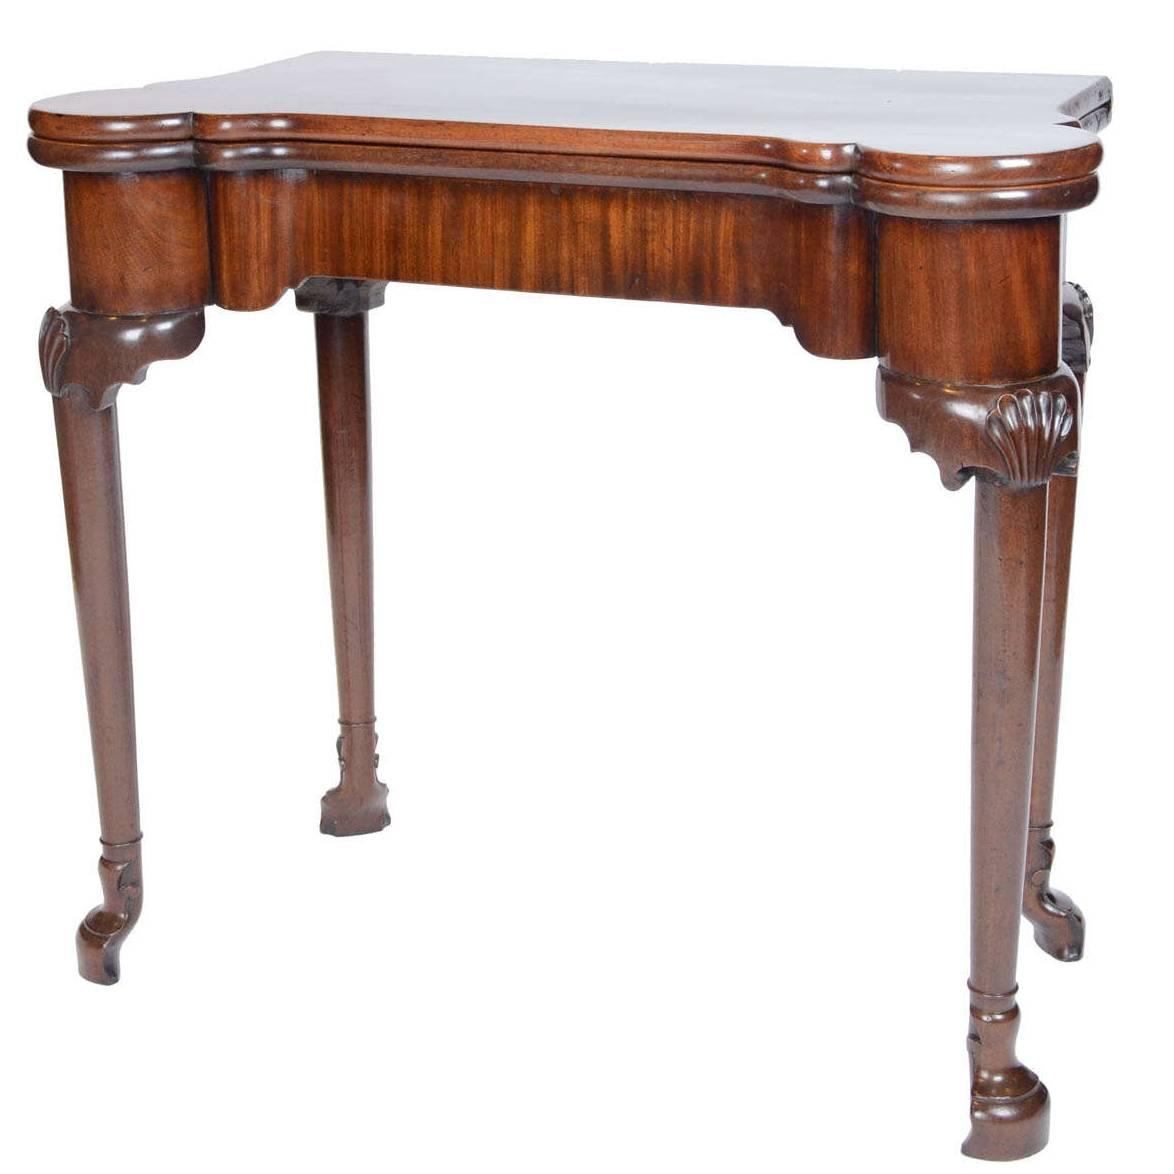 Picture of: Fine And Rare George Ii Period Irish Mahogany Folding Card Table John Bly Antiques Five Generations Of Dealing In Fine Antiques